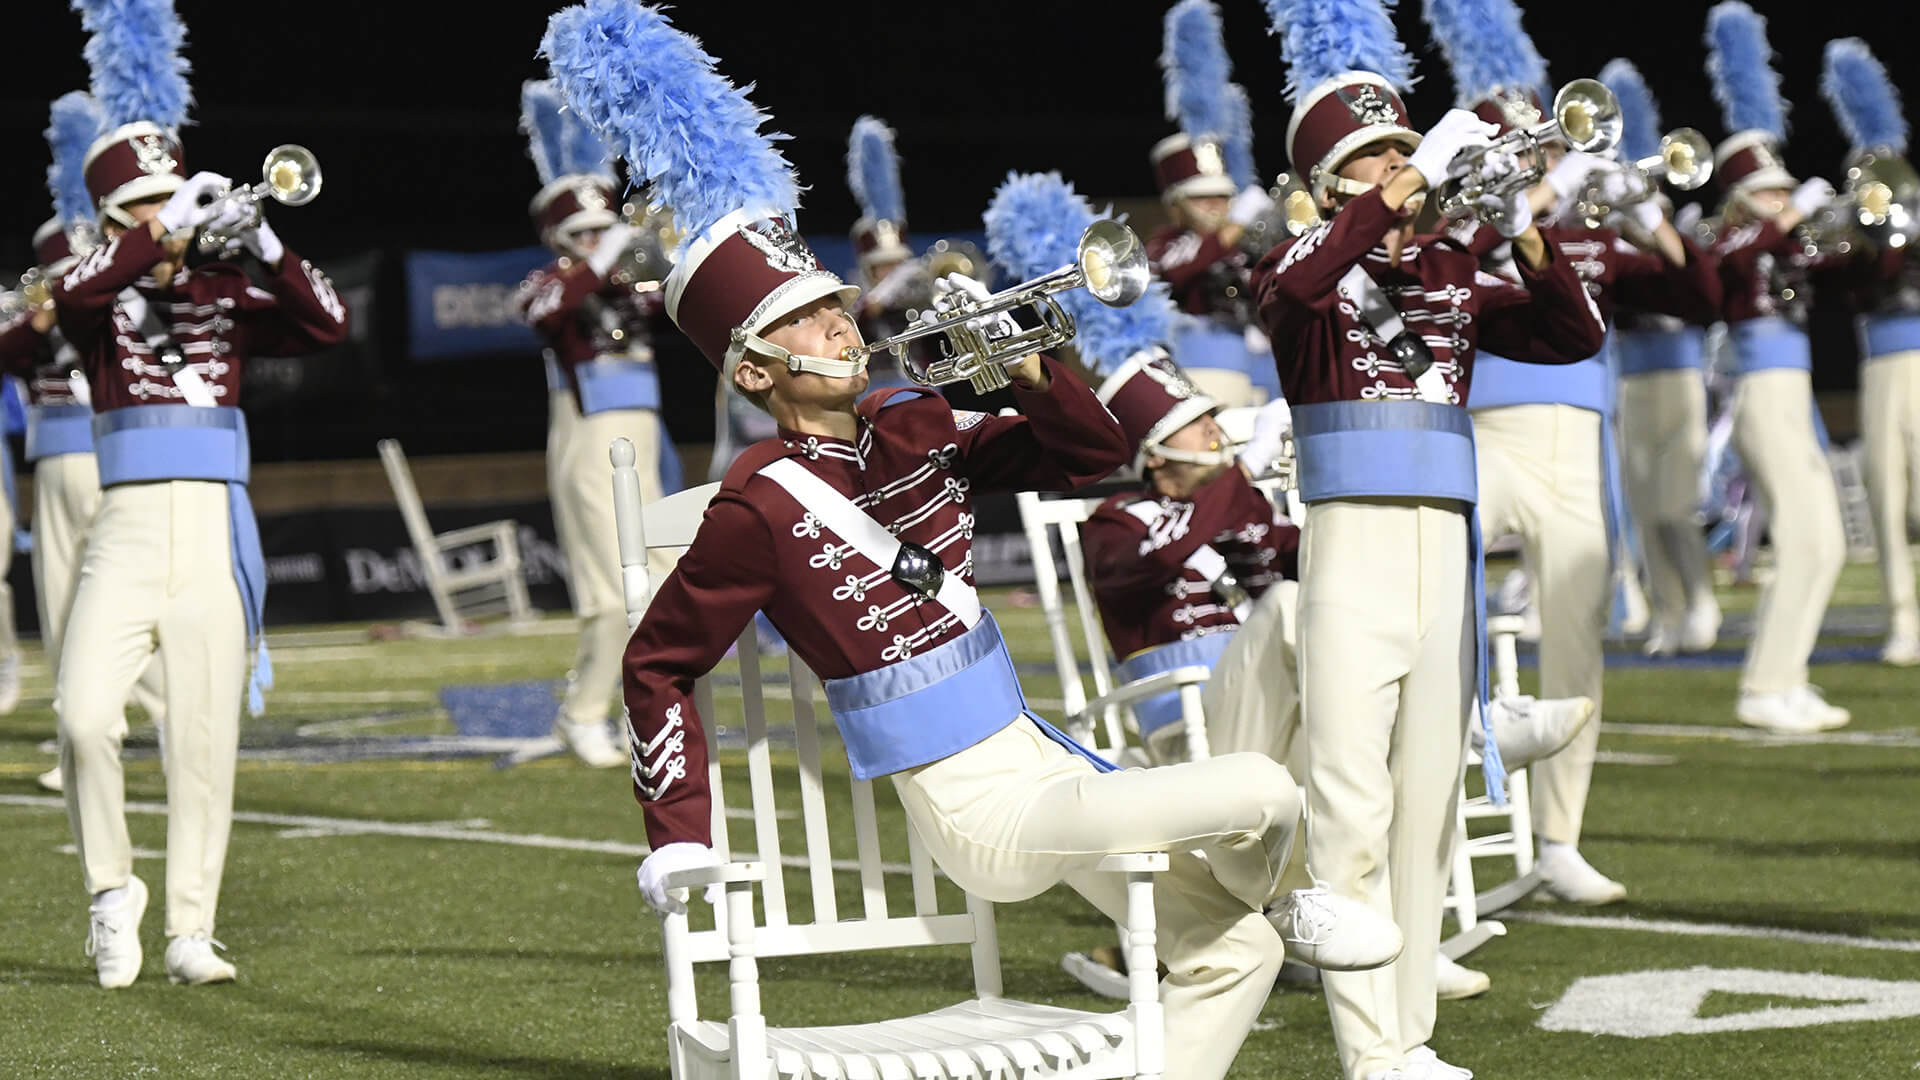 Cadets2 set to defend World Championship title in Rochester